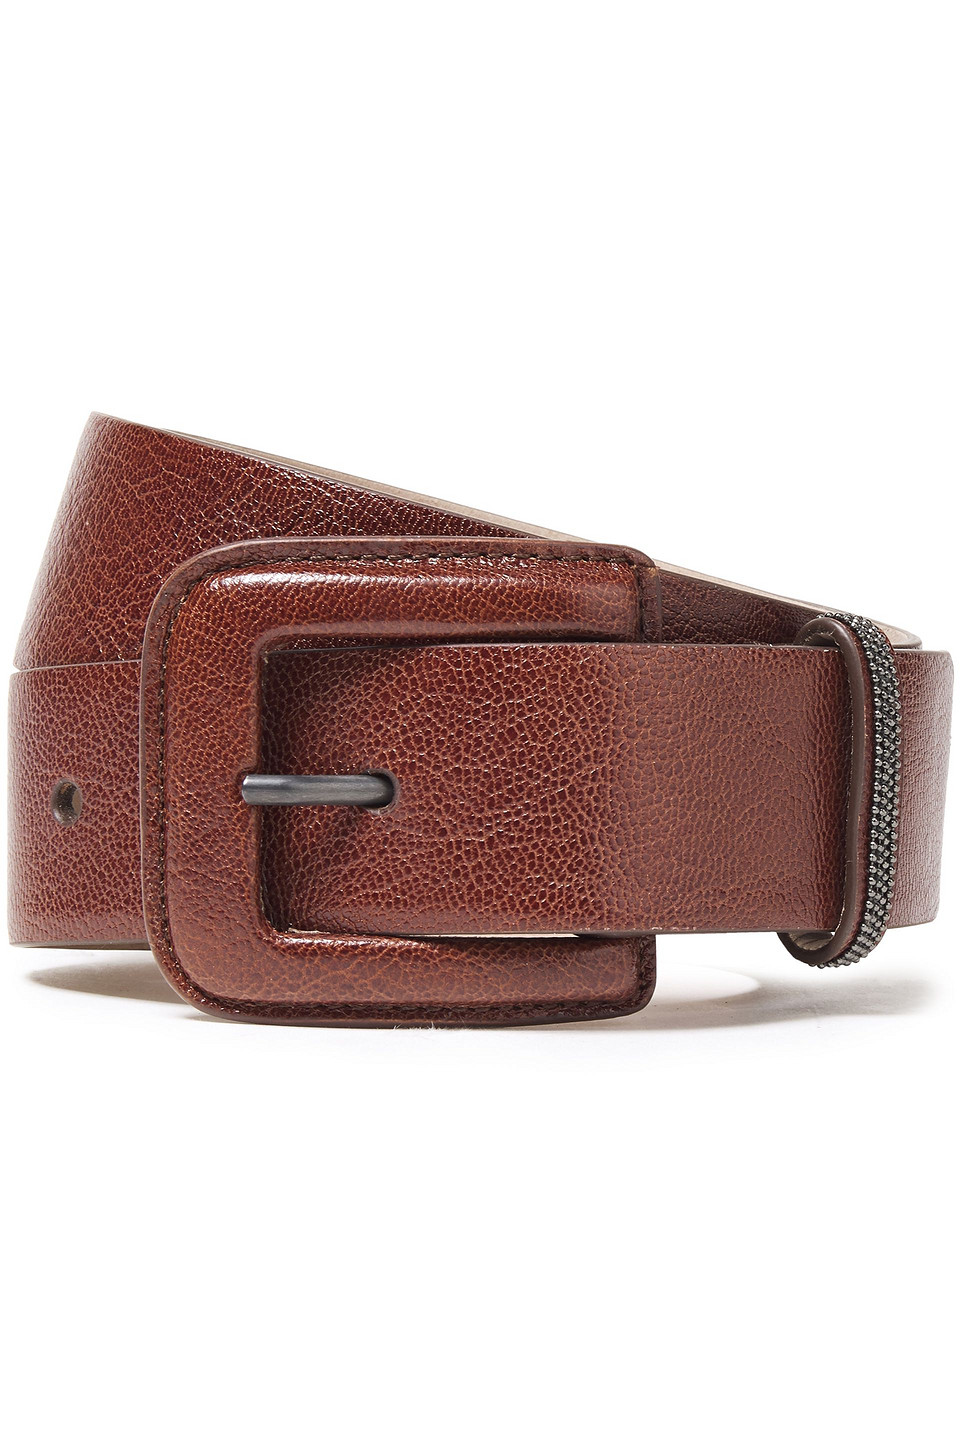 Brunello Cucinelli   Brunello Cucinelli Woman Bead-embellished Leather Belt Brown   Clouty